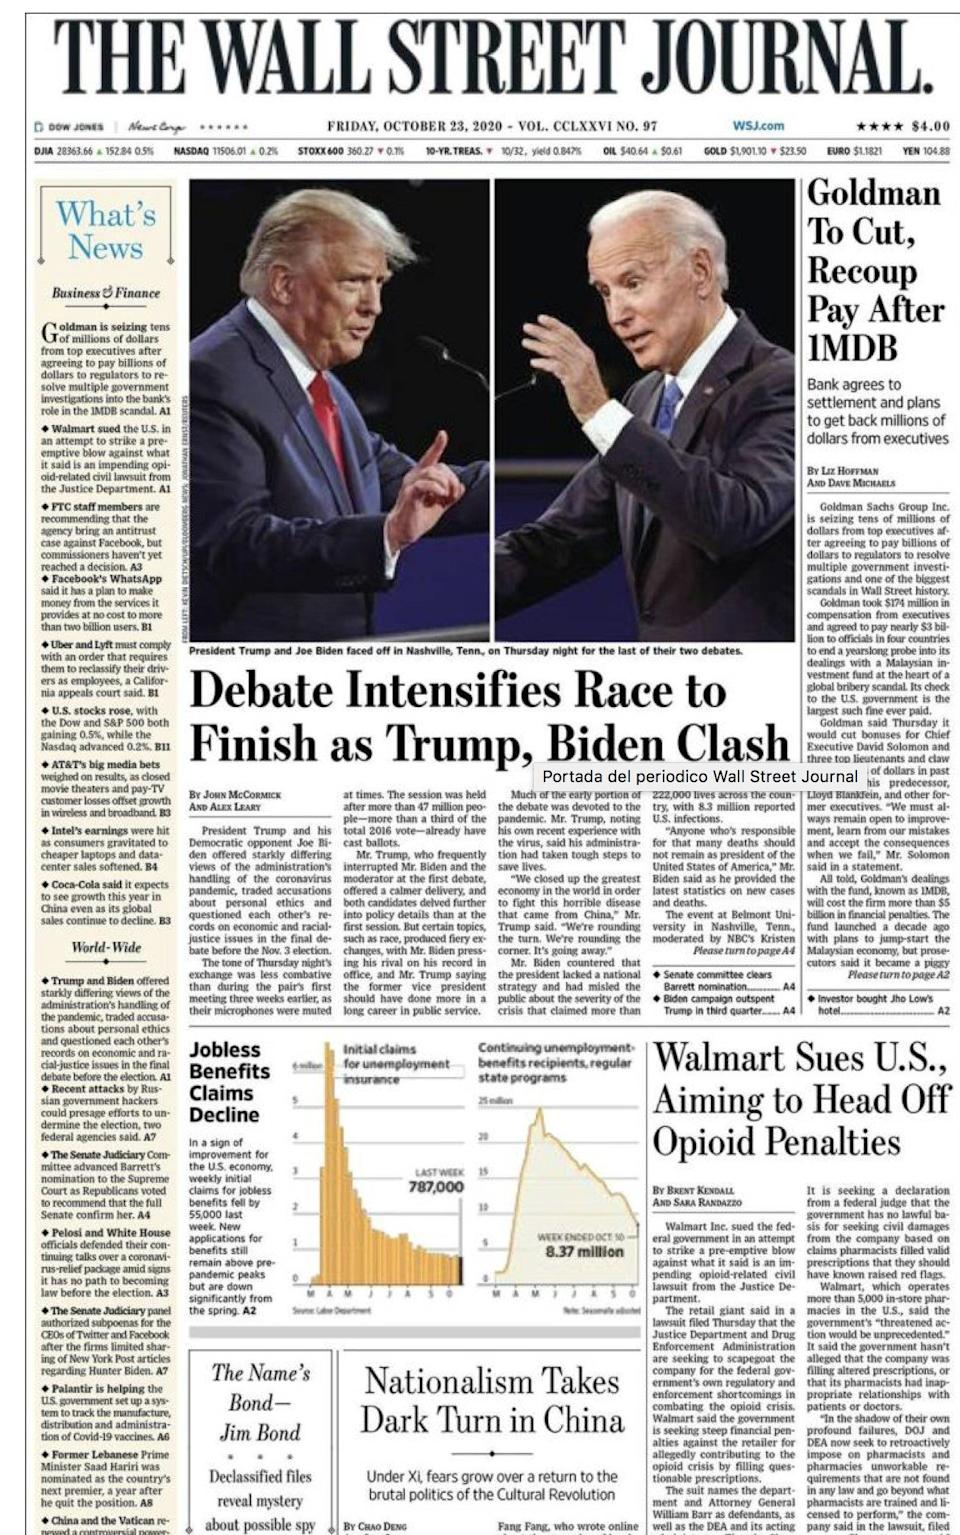 The front page of the Wall Street Journal on Friday